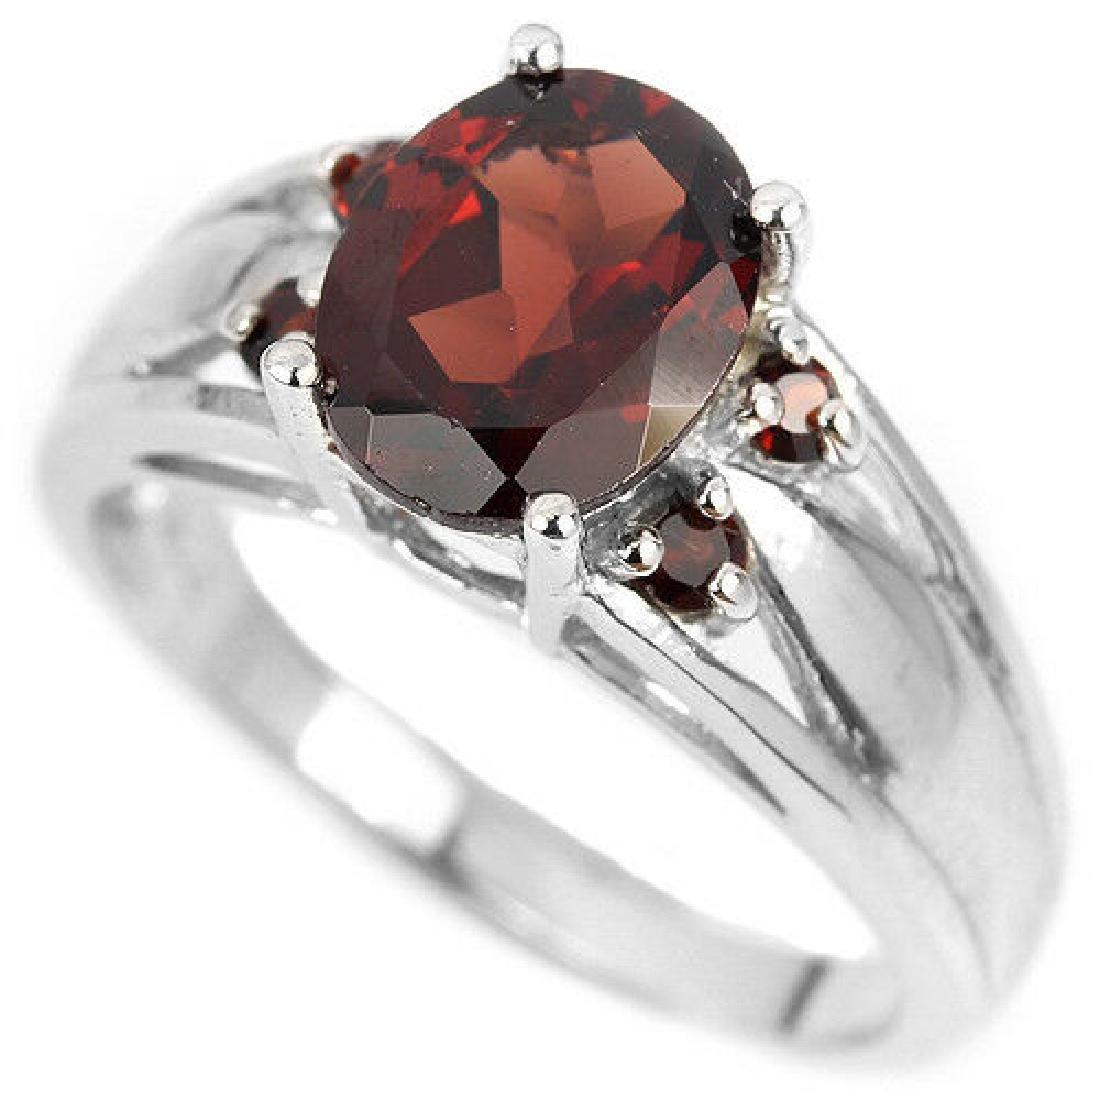 Sterling Silver Natural Garnet Solitaire Ring Size N US - 2